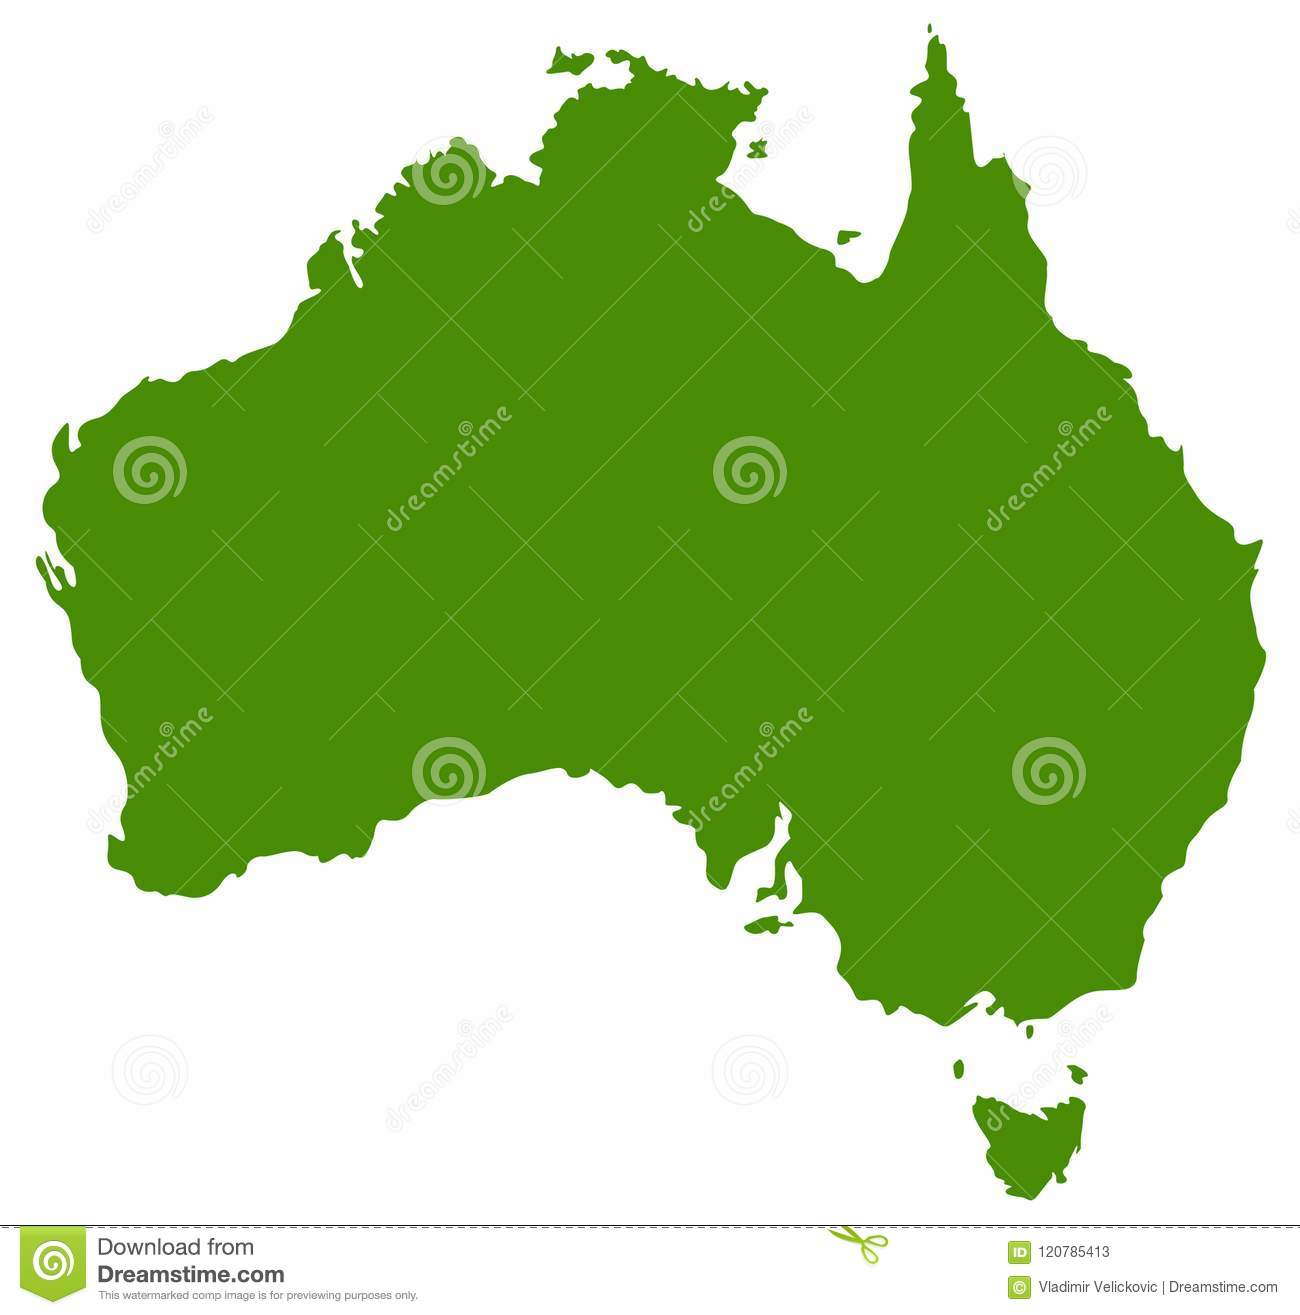 Country Map Of Australia.Australia Map Country Of The Australian Continent Stock Vector